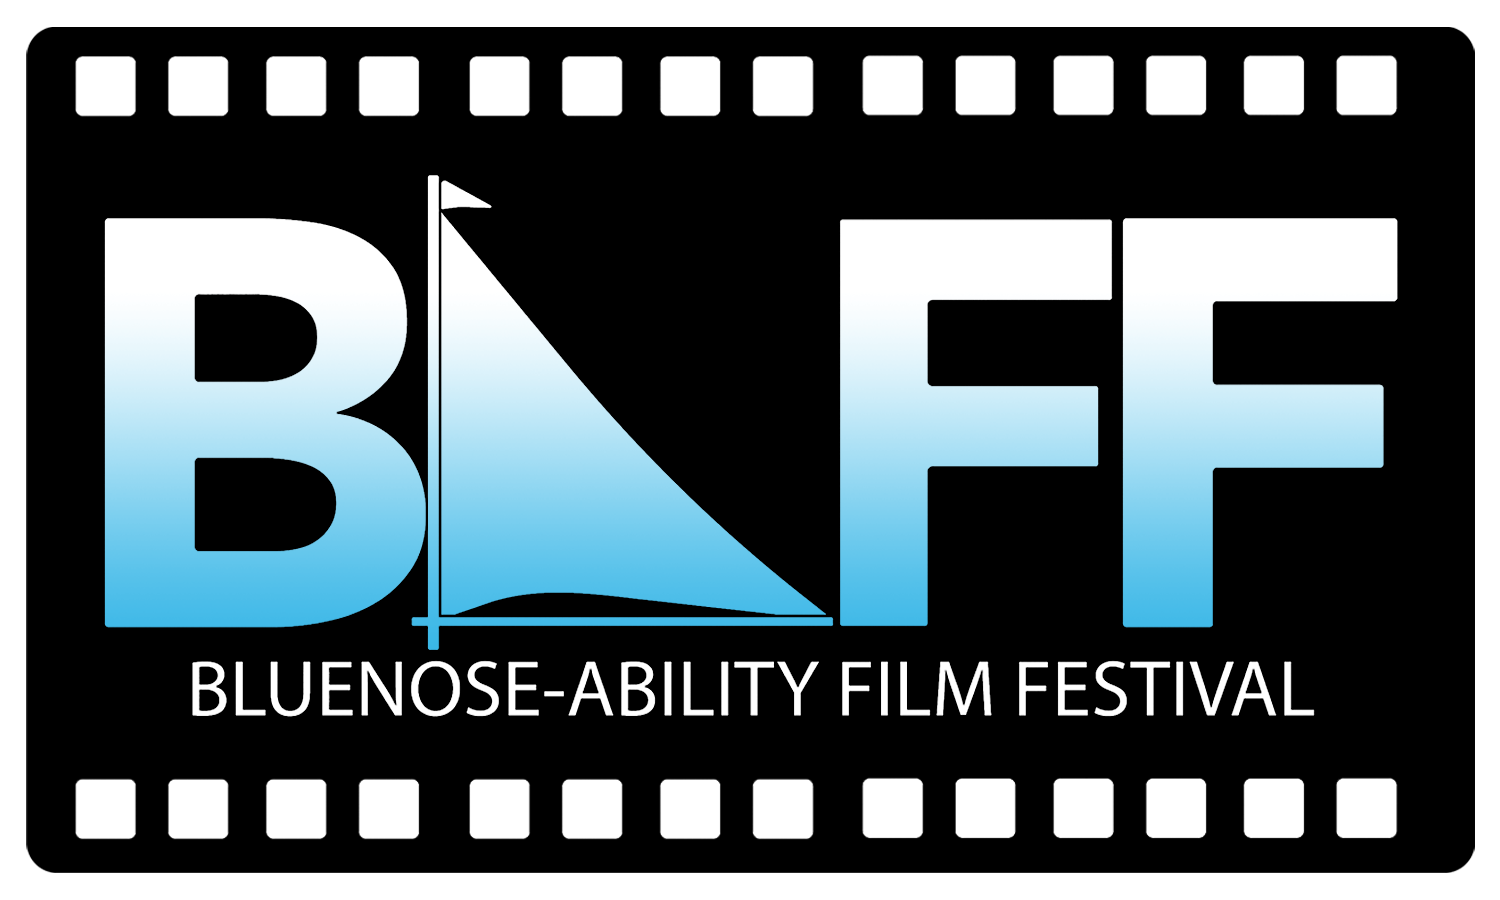 Bluenose-Ability Film Festival